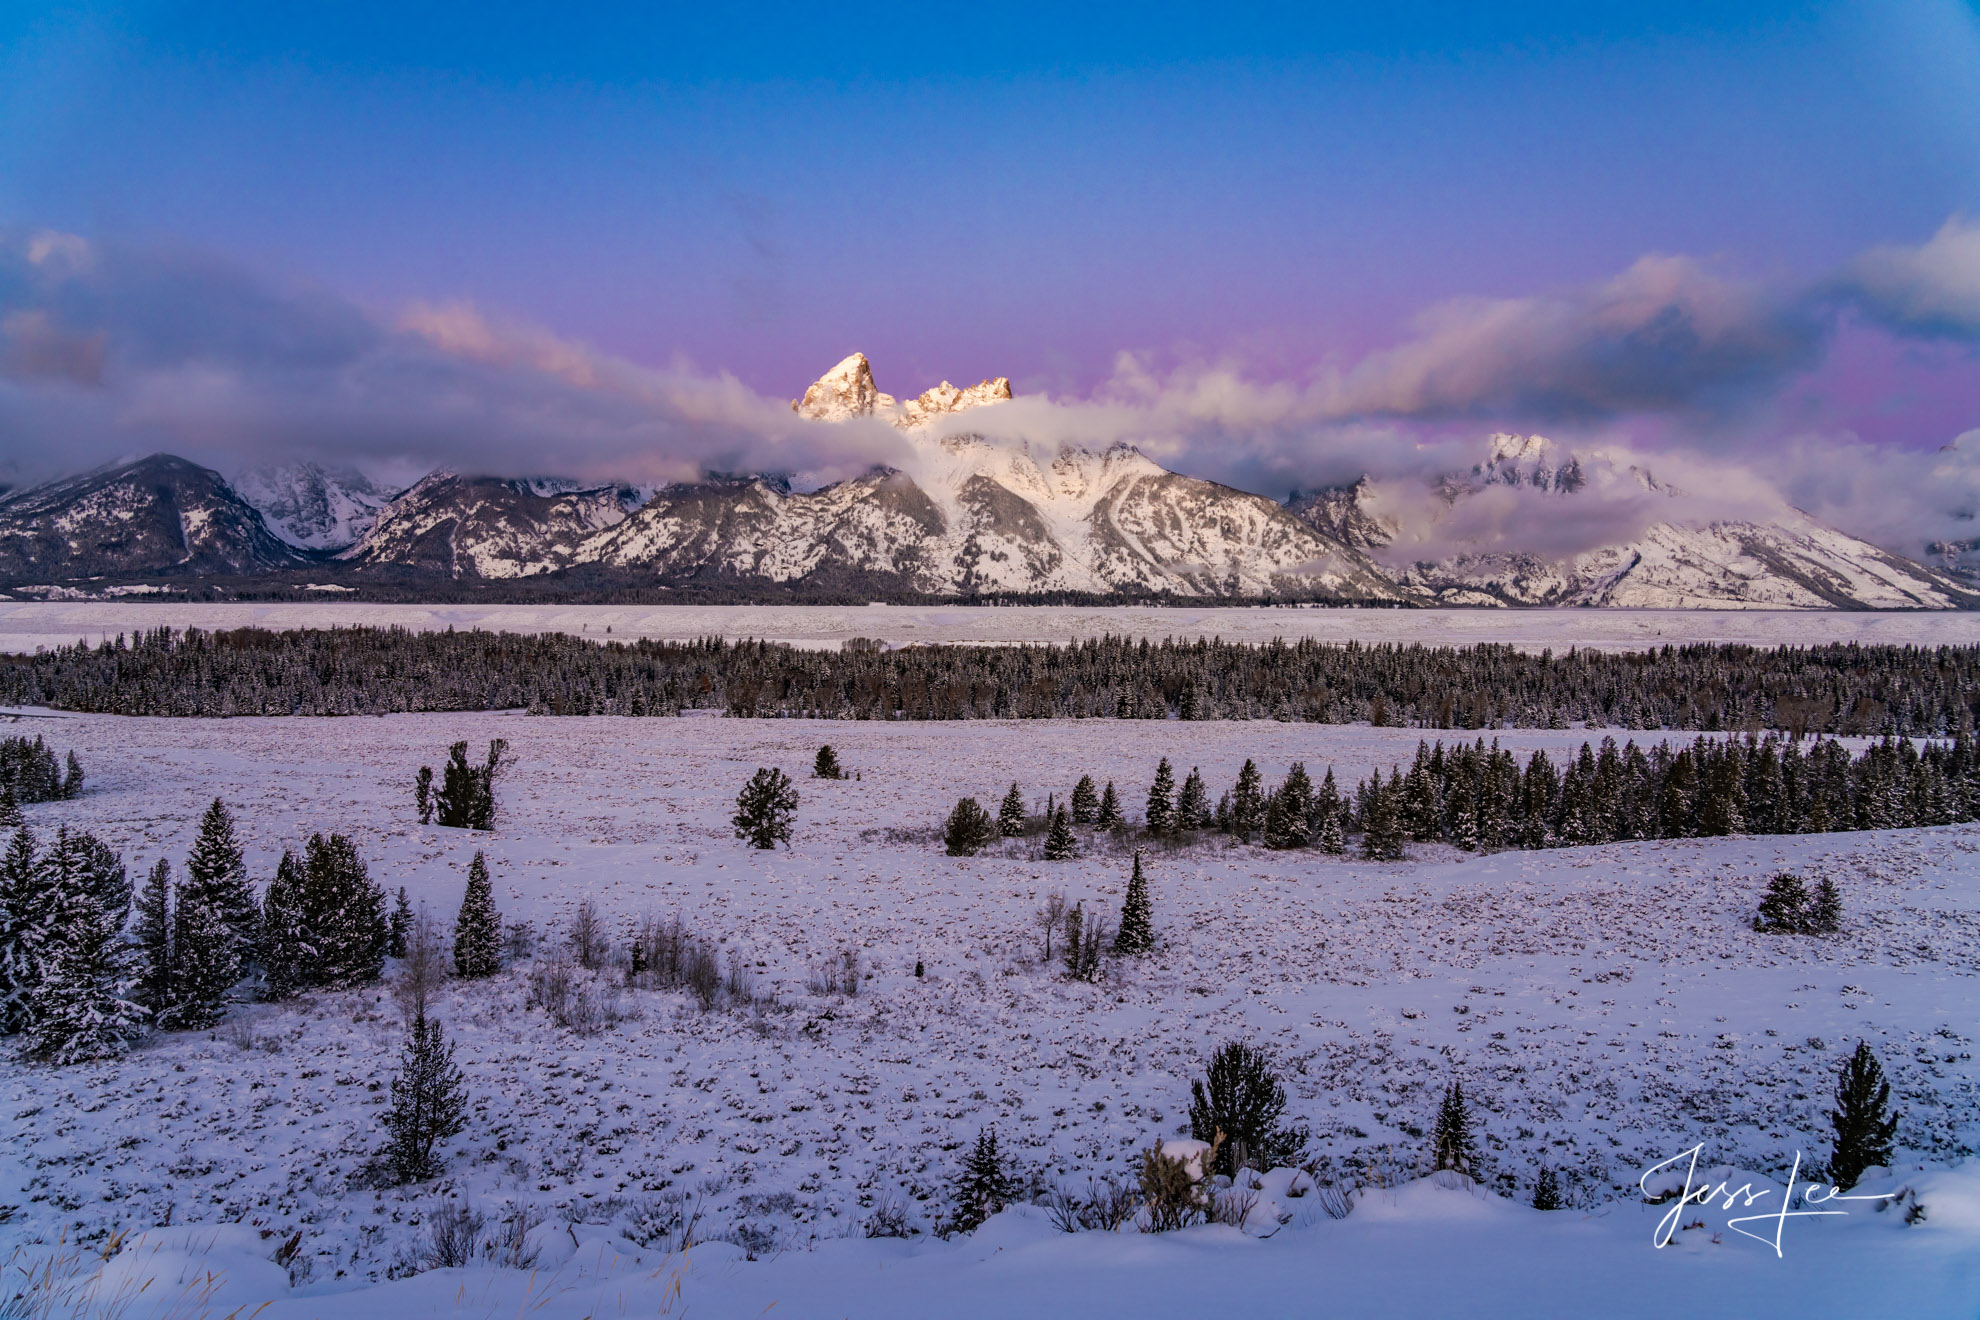 photo of Grand Tetons in winter, Wyoming, Jackson Hole, mountains, winter, snow-covered peaks, evergreens, nature, wilderness, wild, nature, large format, quality, museum, fine art, print, artist, jes, photo